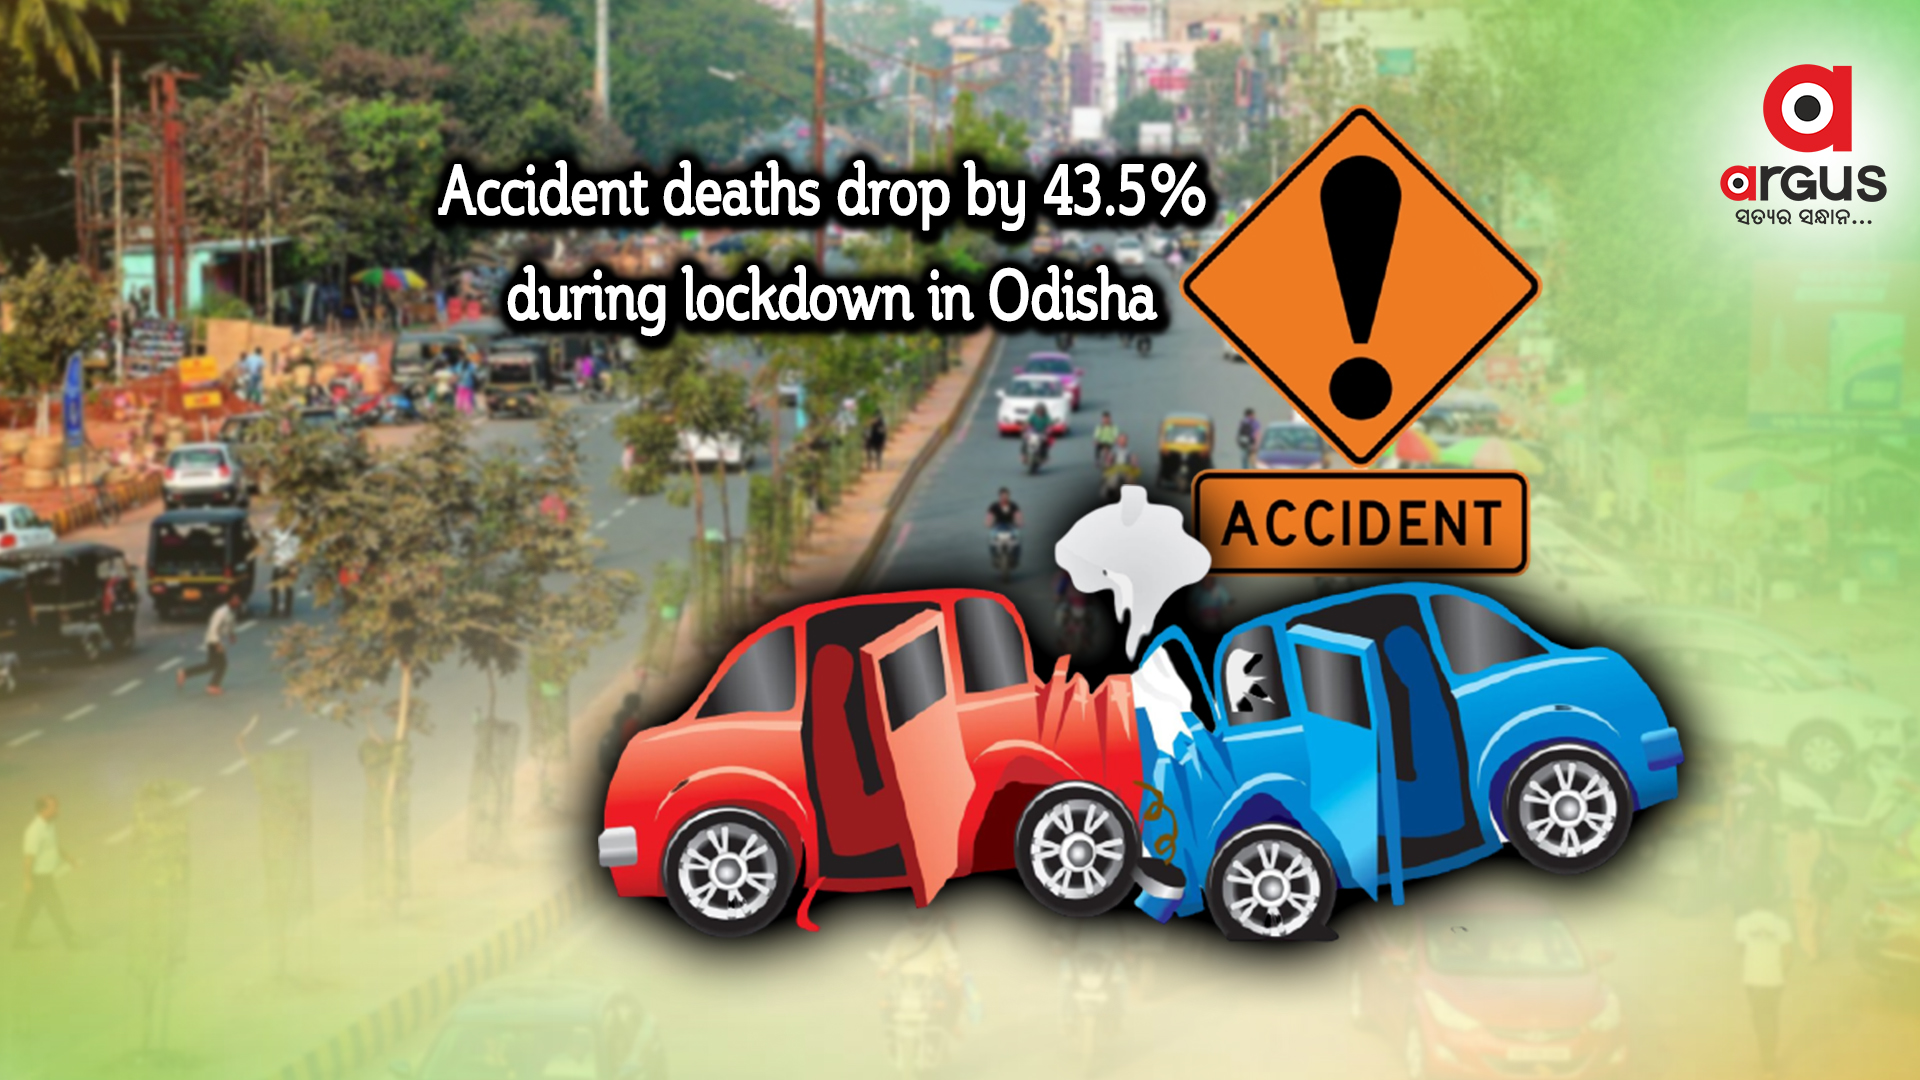 Accident deaths drop by 43.5% during lockdown in Odisha